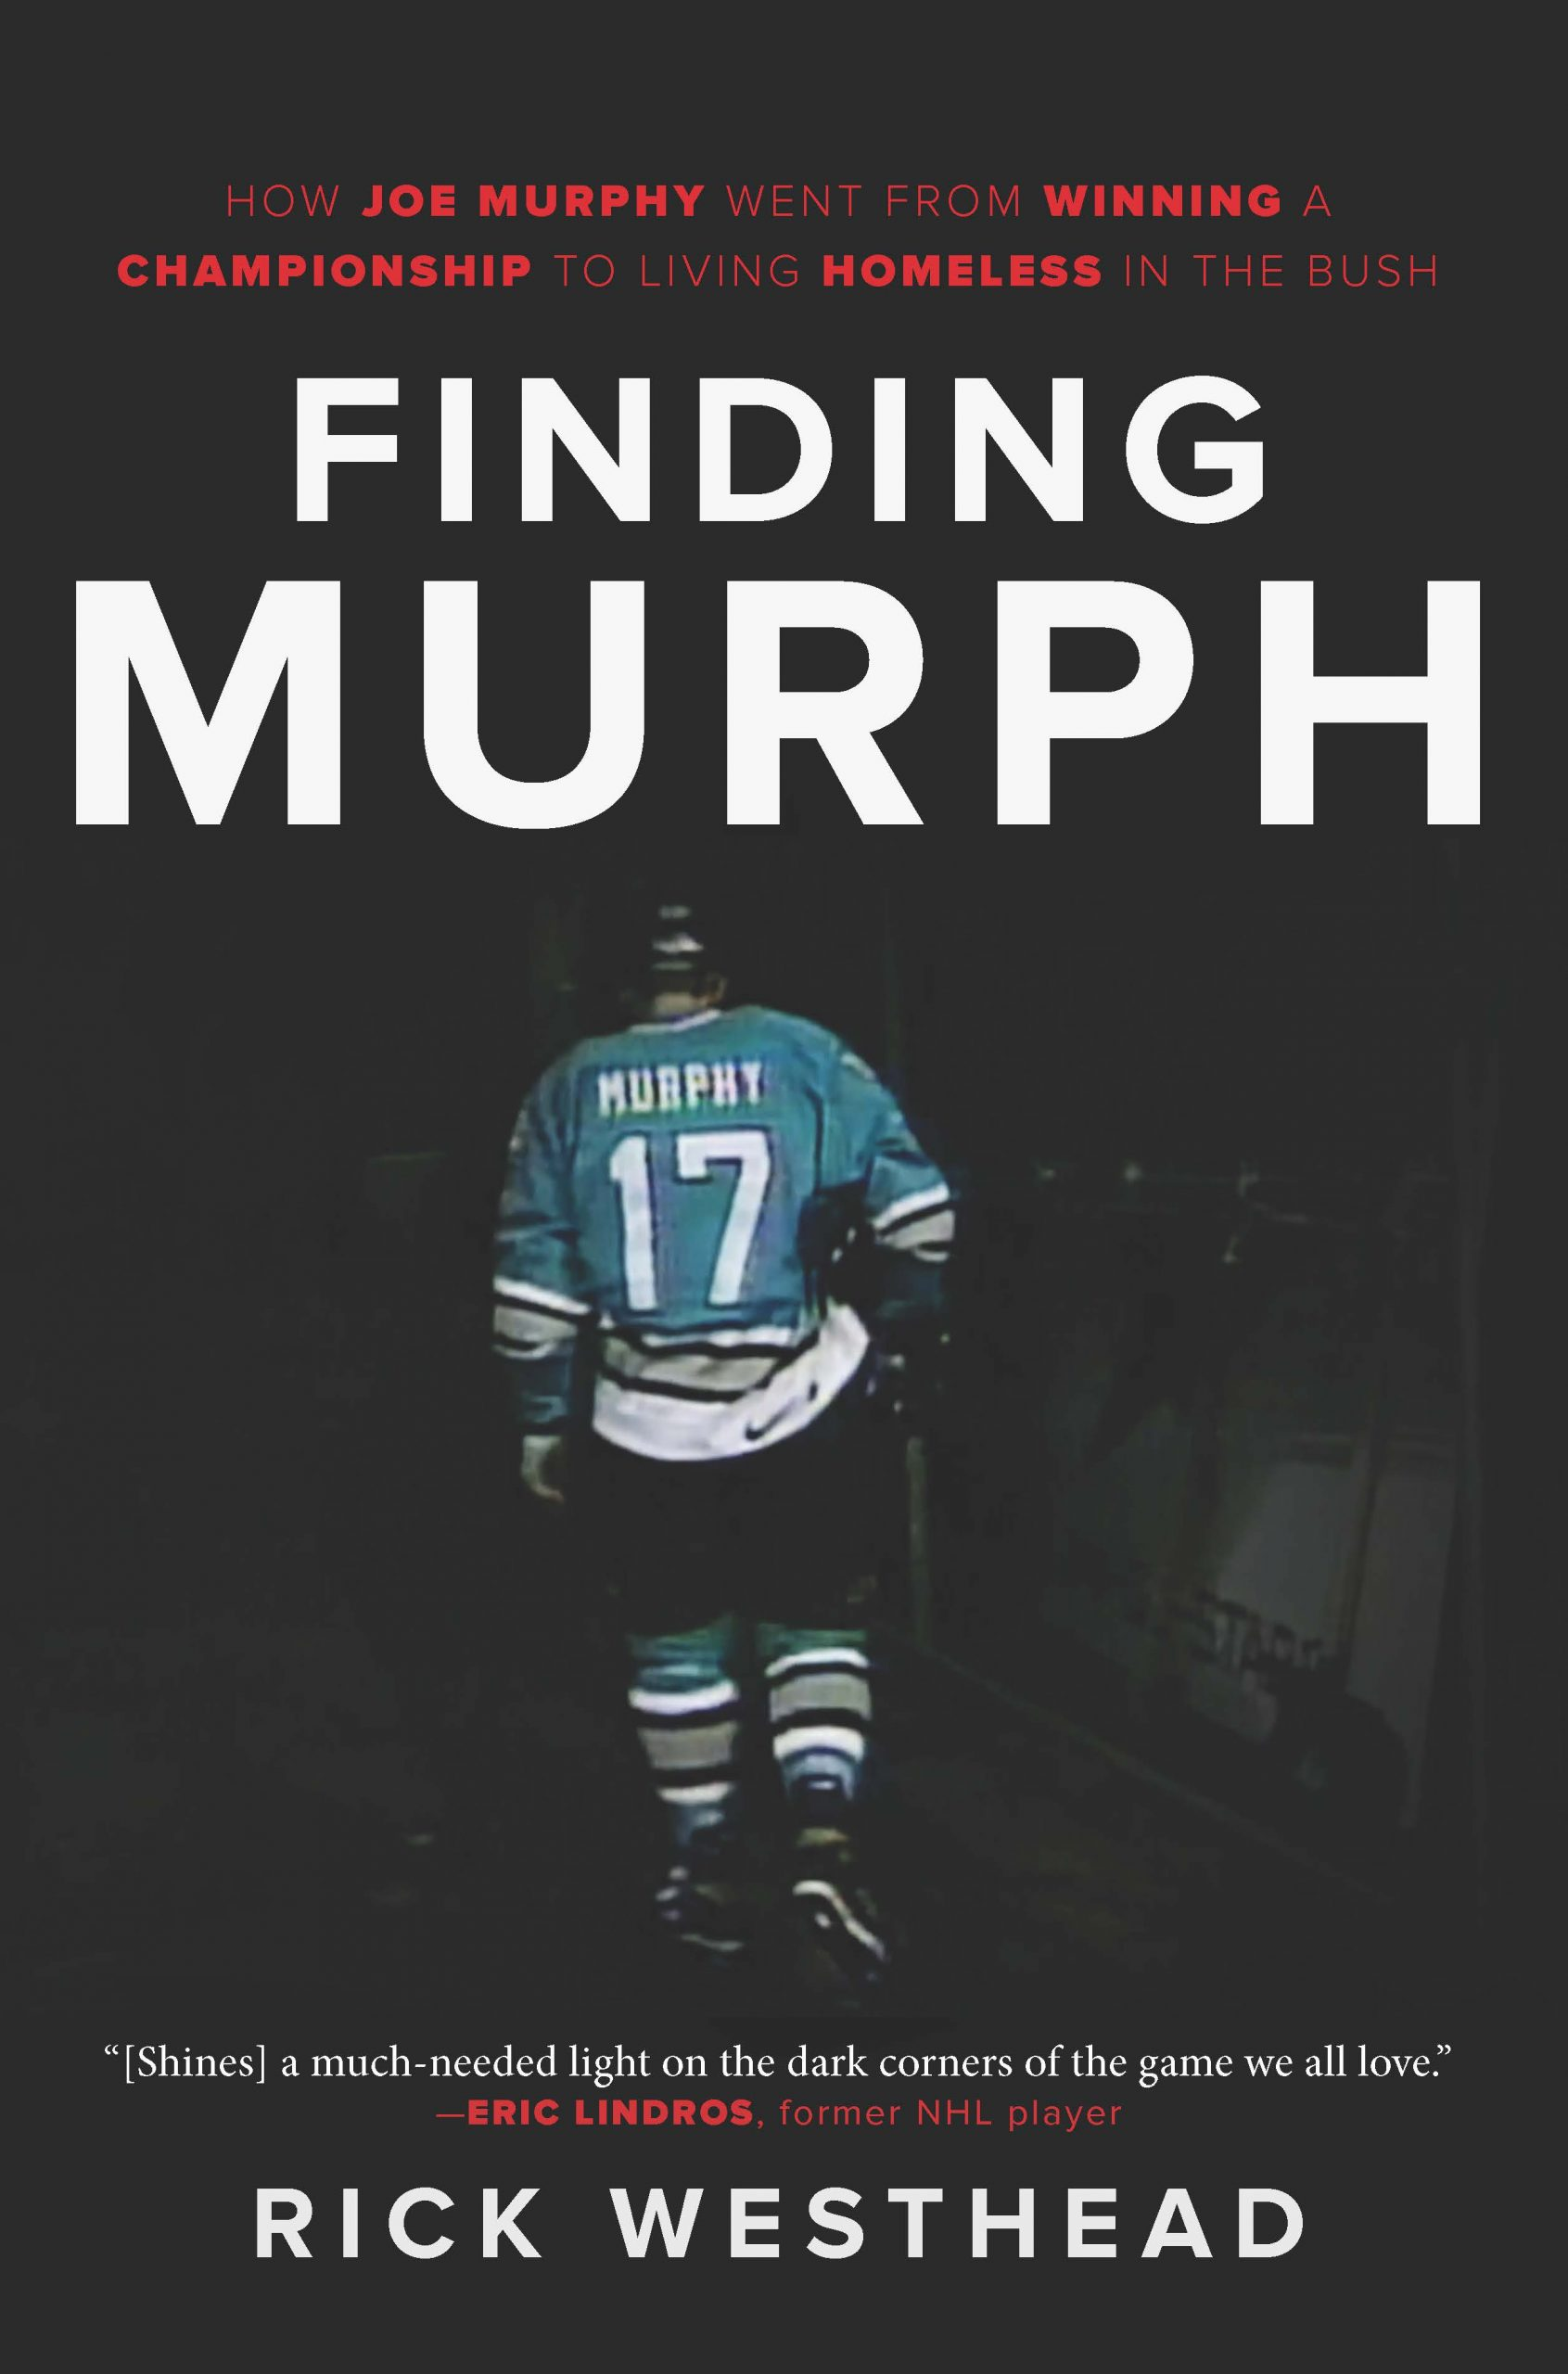 Cover of Finding Murph – How Joe Murphy Went From Winning a Championship to Living in the Bush